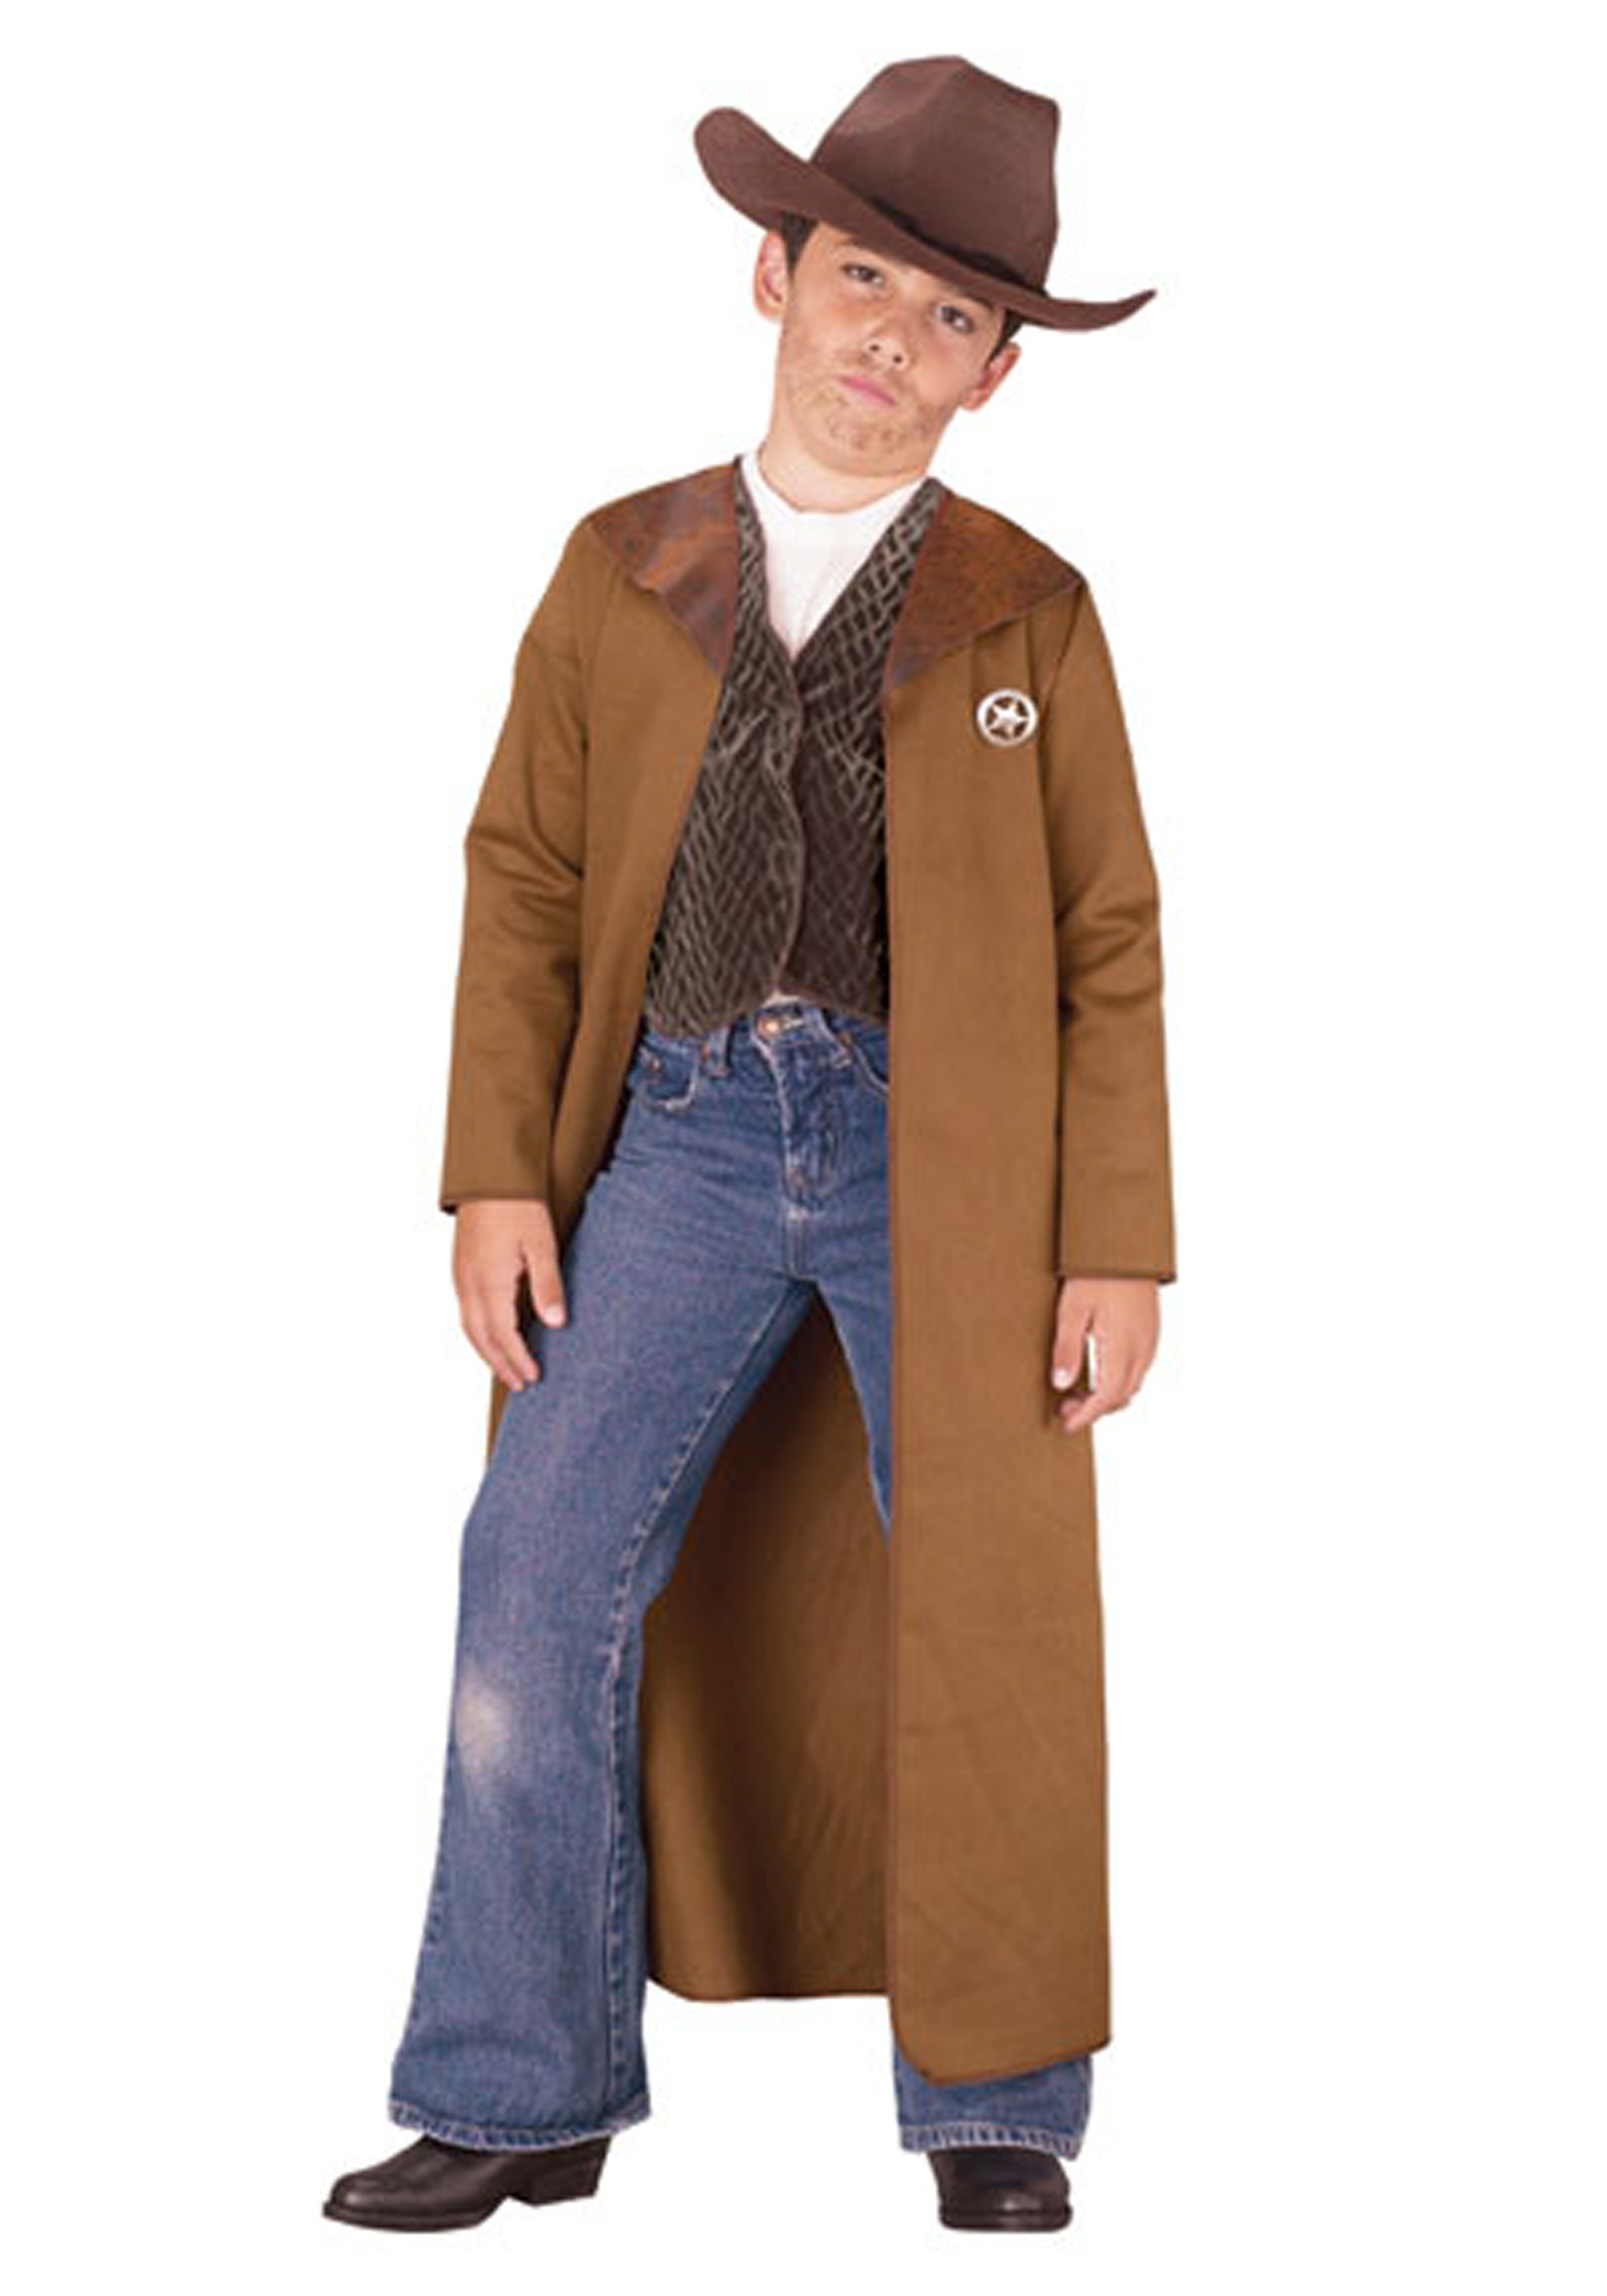 Cowboys Costumes For Females Kids Cowboy Costume